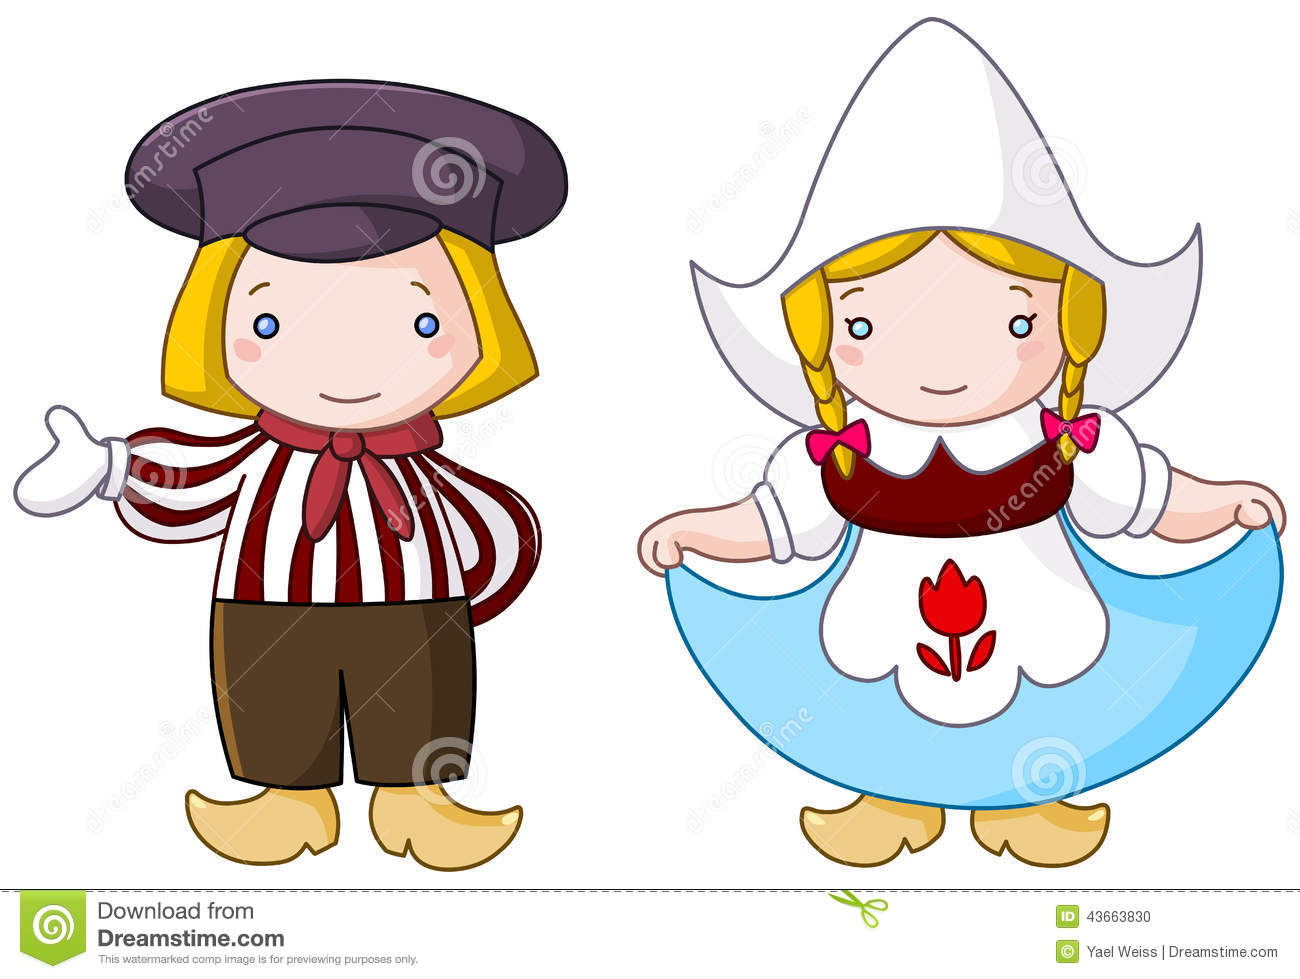 Illustration of a traditional Dutch couple cartoon.